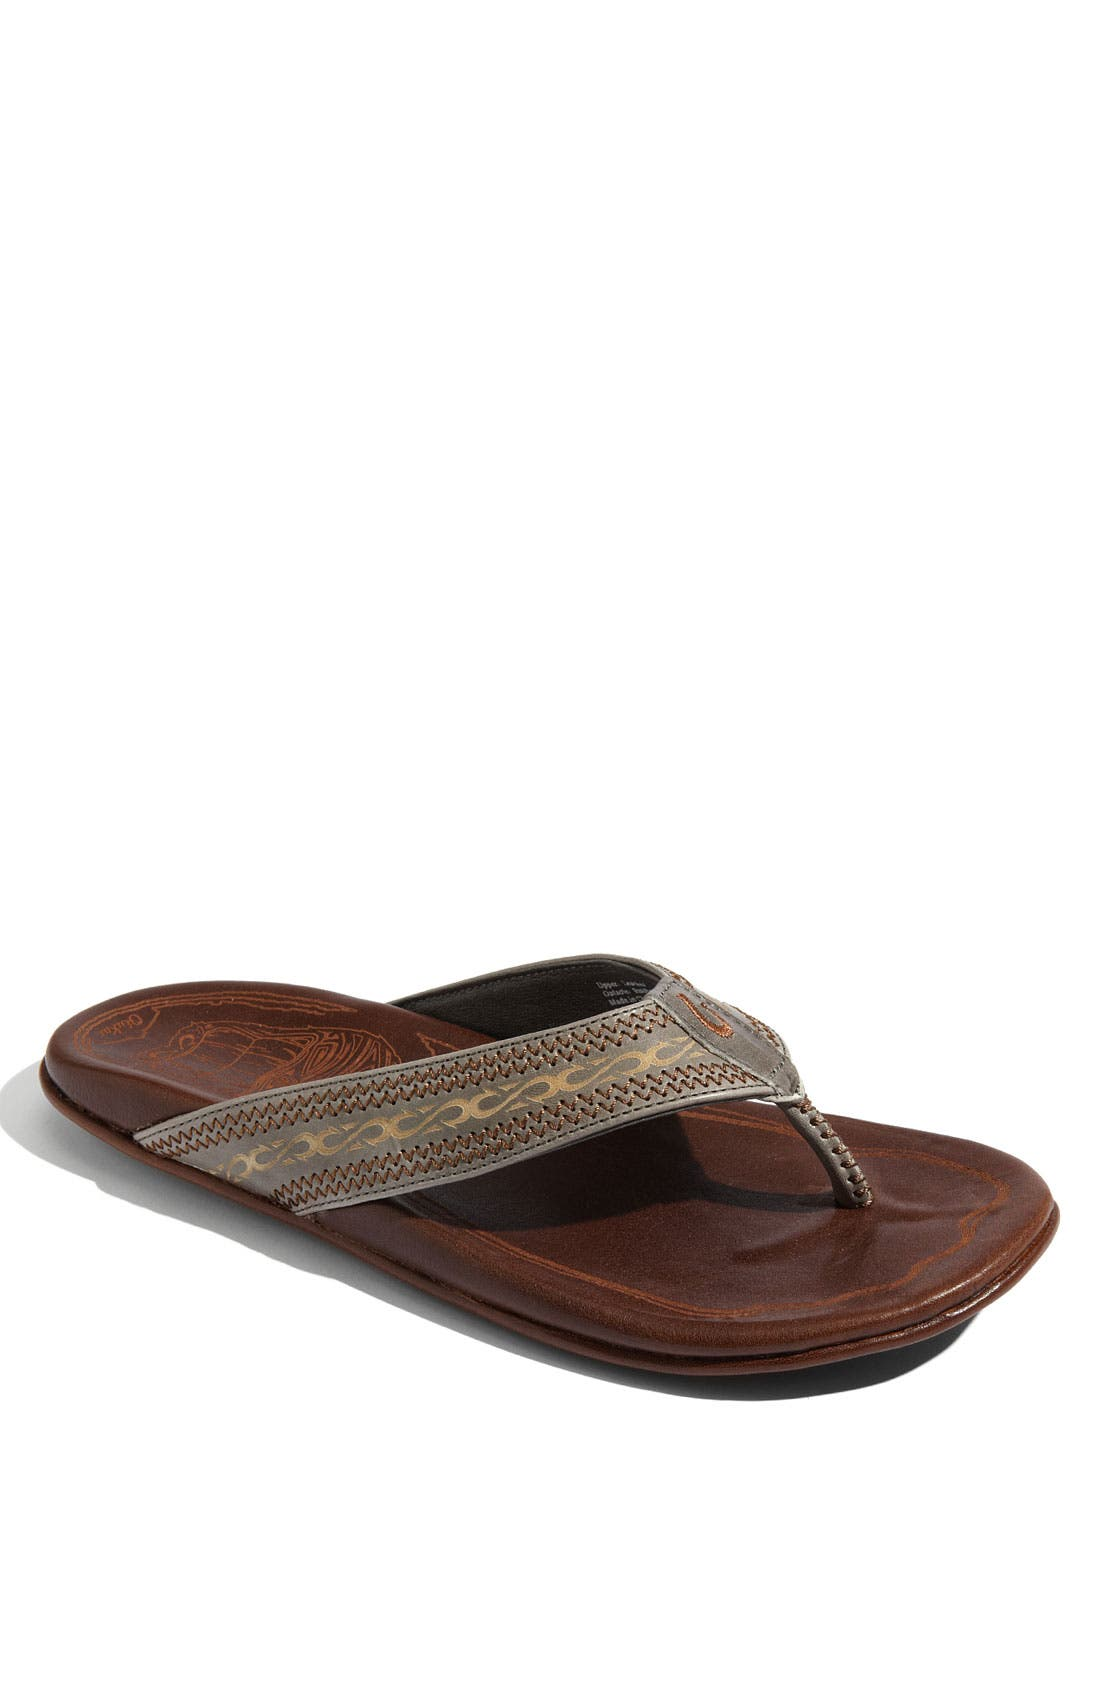 Alternate Image 1 Selected - OluKai 'Akua' Flip Flop (Nordstrom Exclusive) (Men)